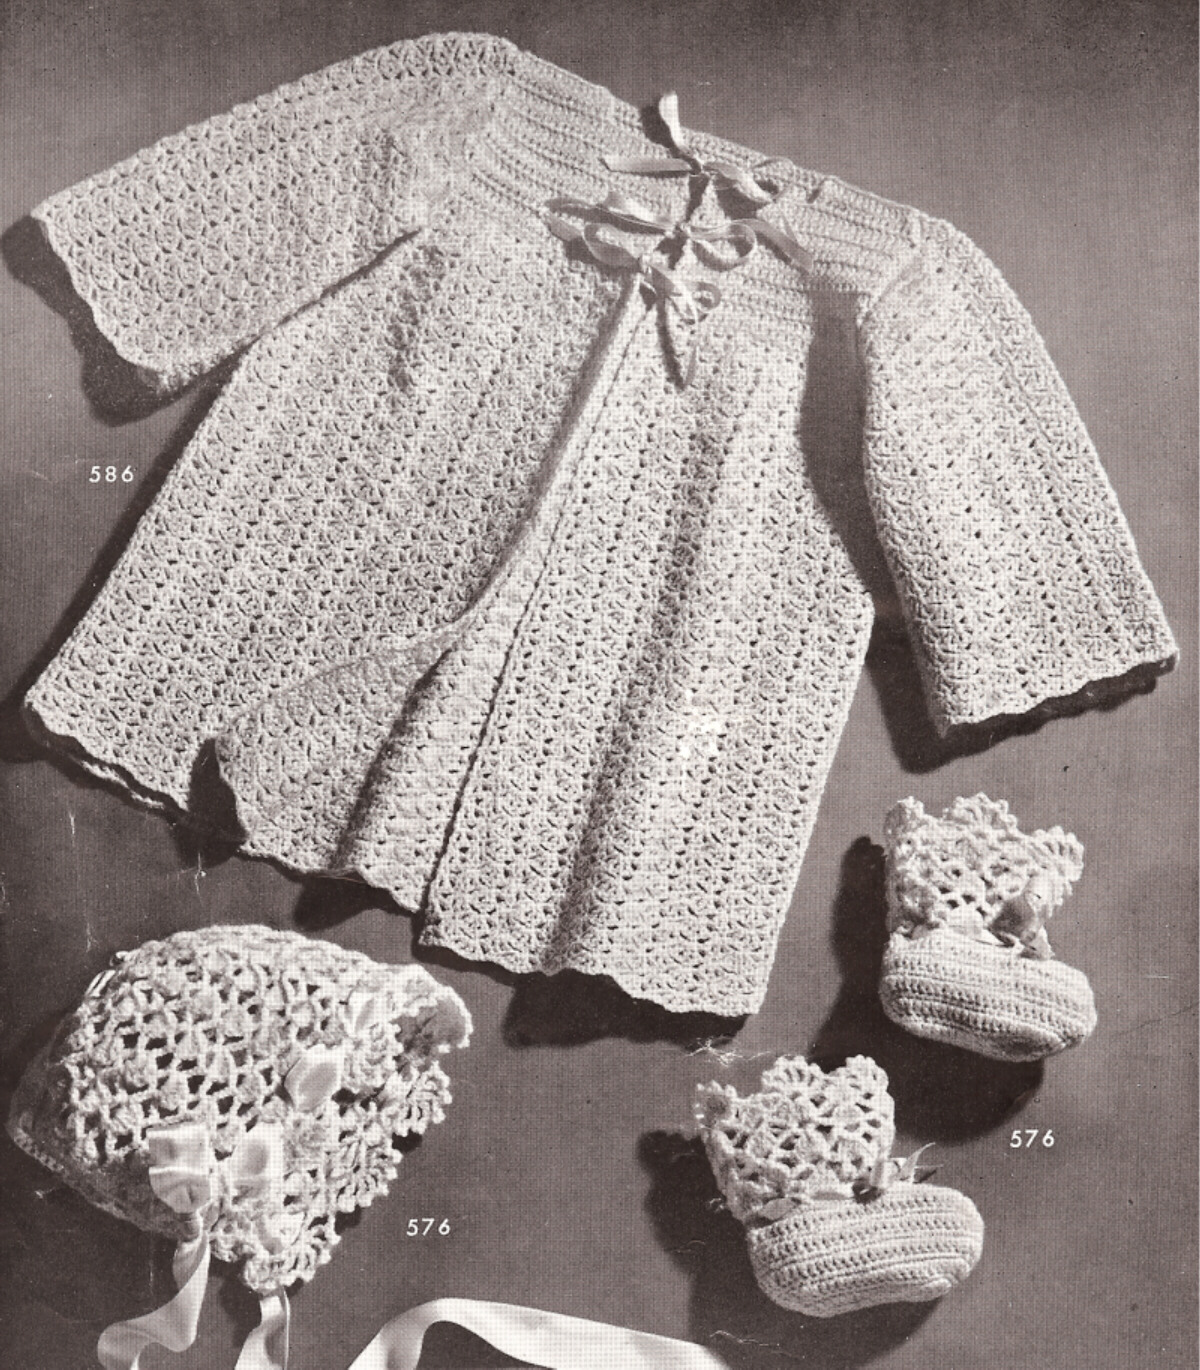 Crochet Baby Bonnet And Booties Pattern : Vintage Baby Sacque Bonnet Booties Crochet Pattern Set